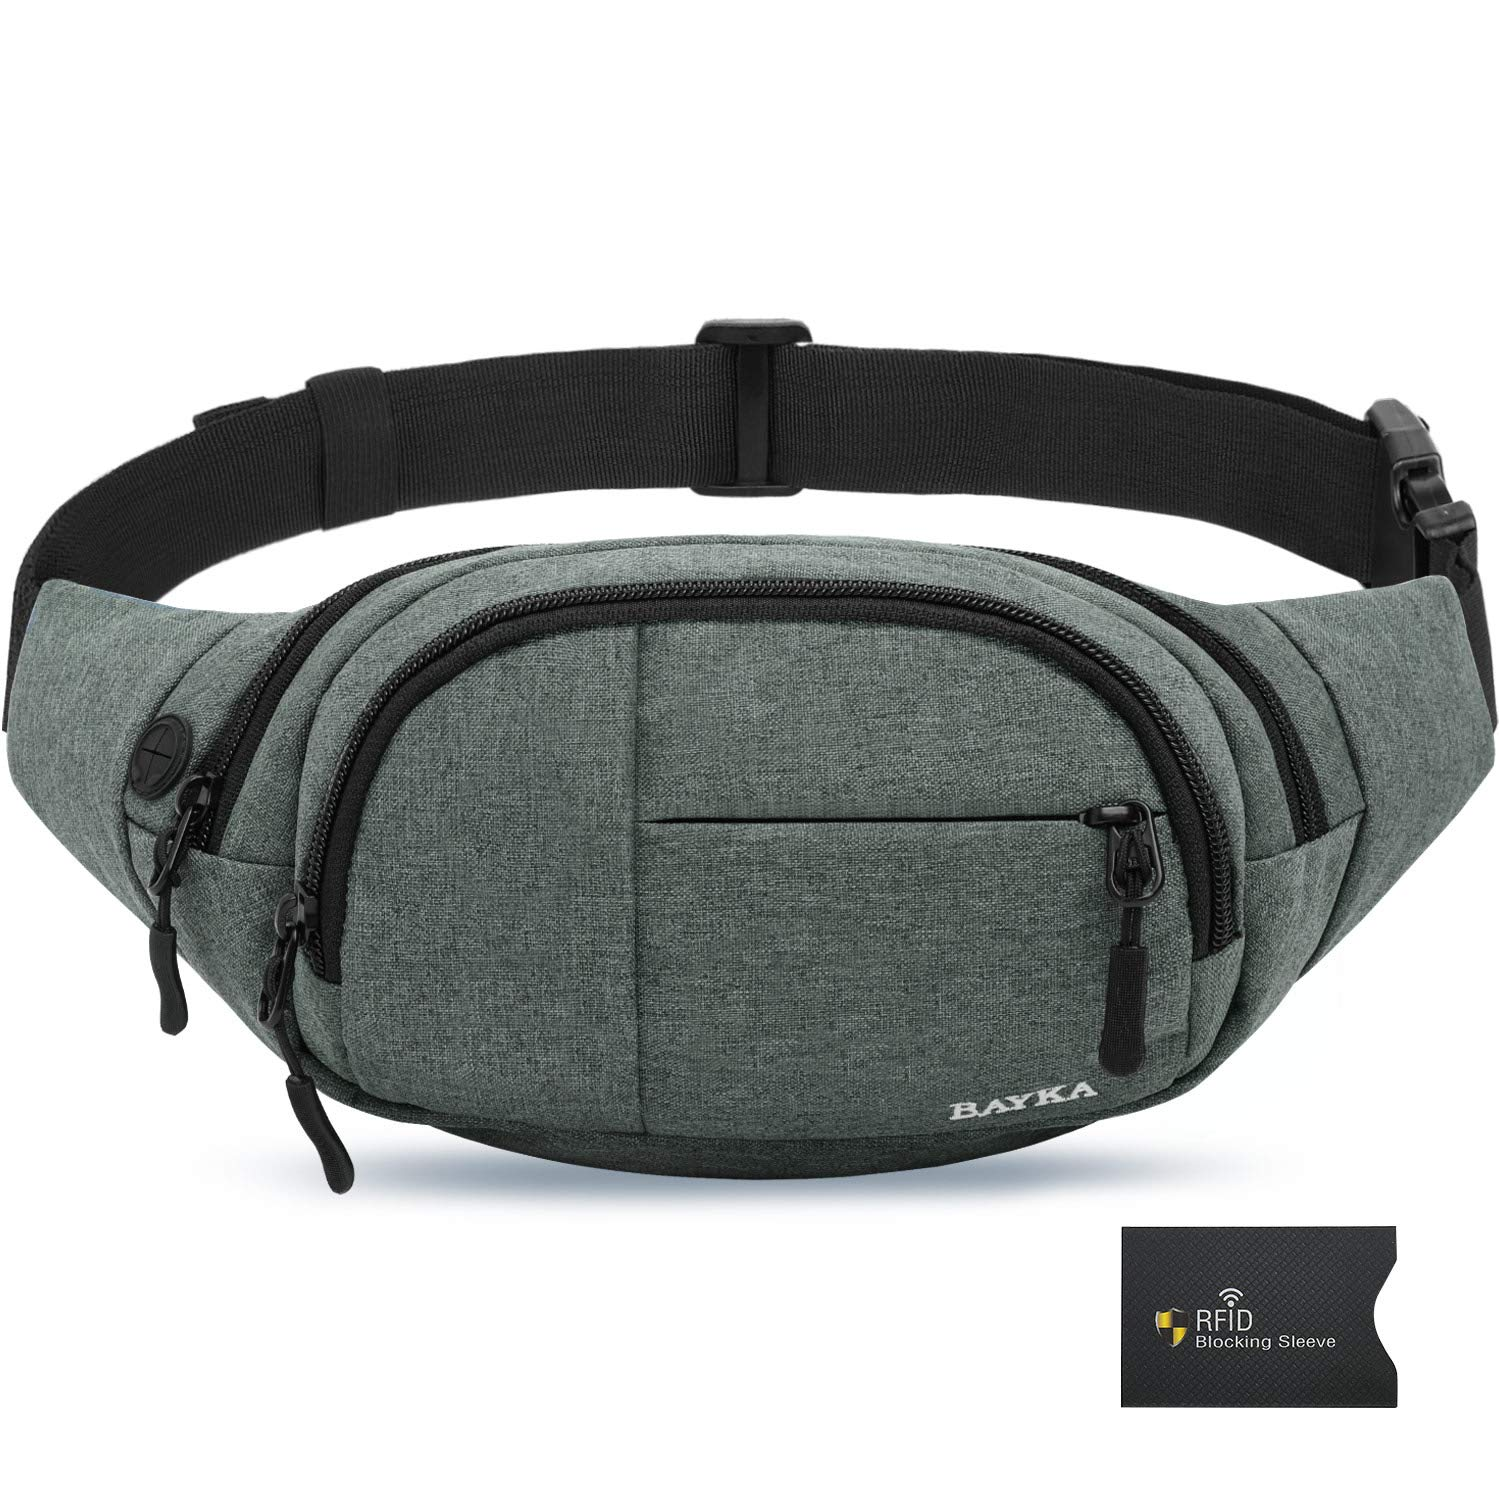 BAYKA Fanny Pack for Men and Women, Water Resistant Fashion Waist Bag with Adjustable Belt and RFID Blocking Sleeve, 300D Polyester Waist Pack for Outdoor, Travel, Hiking, Running